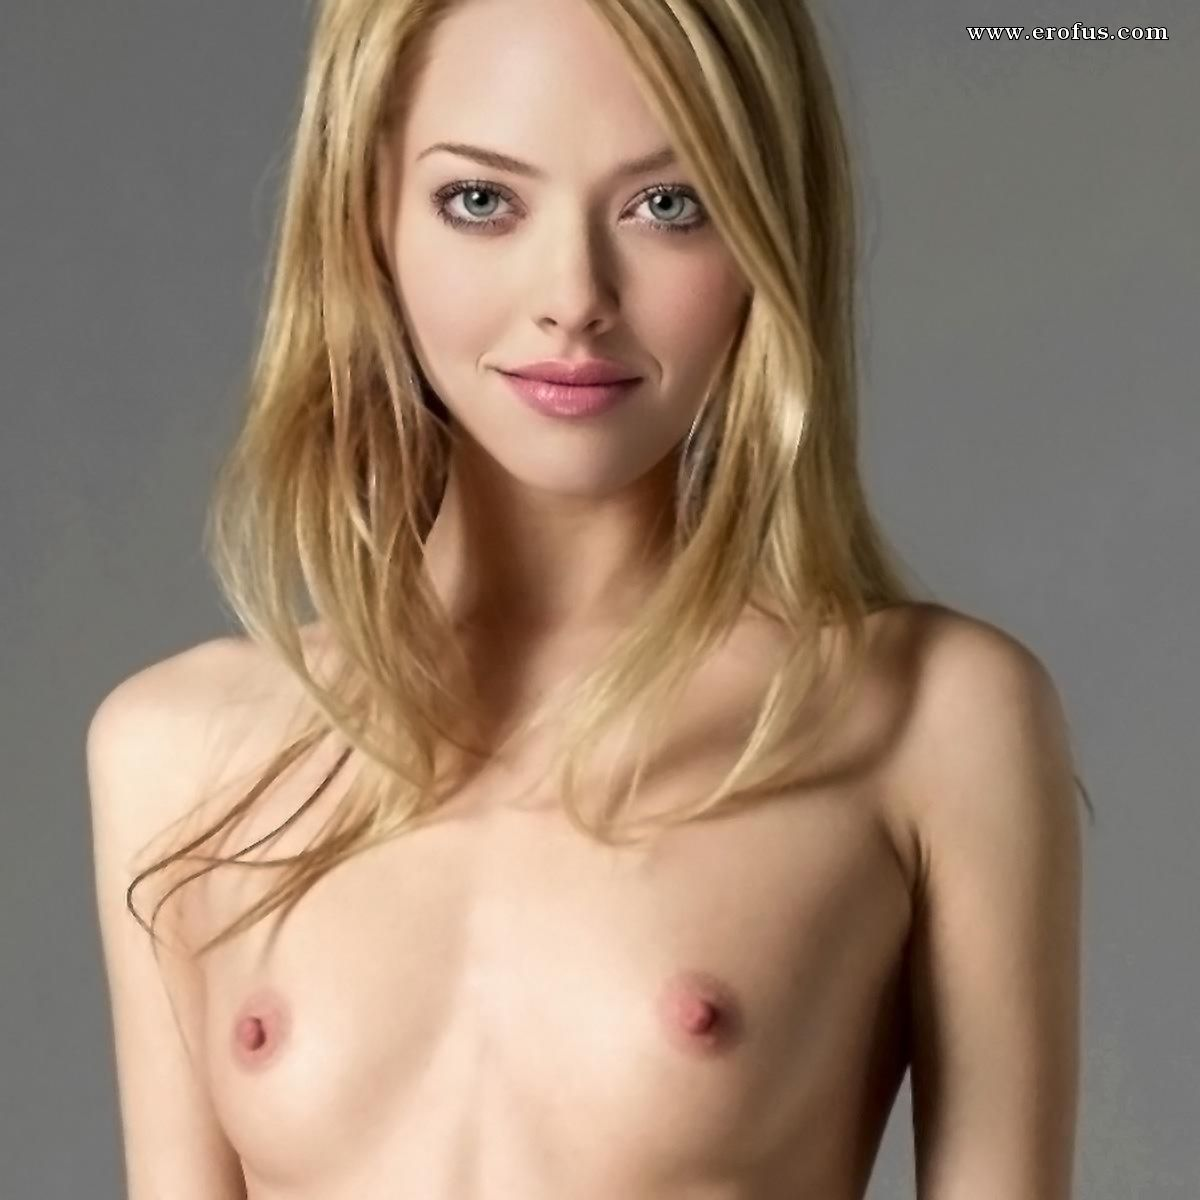 Amanda Seyfried Sex Pics page 48 | fake-celebrities-sex-pictures/amanda-seyfried